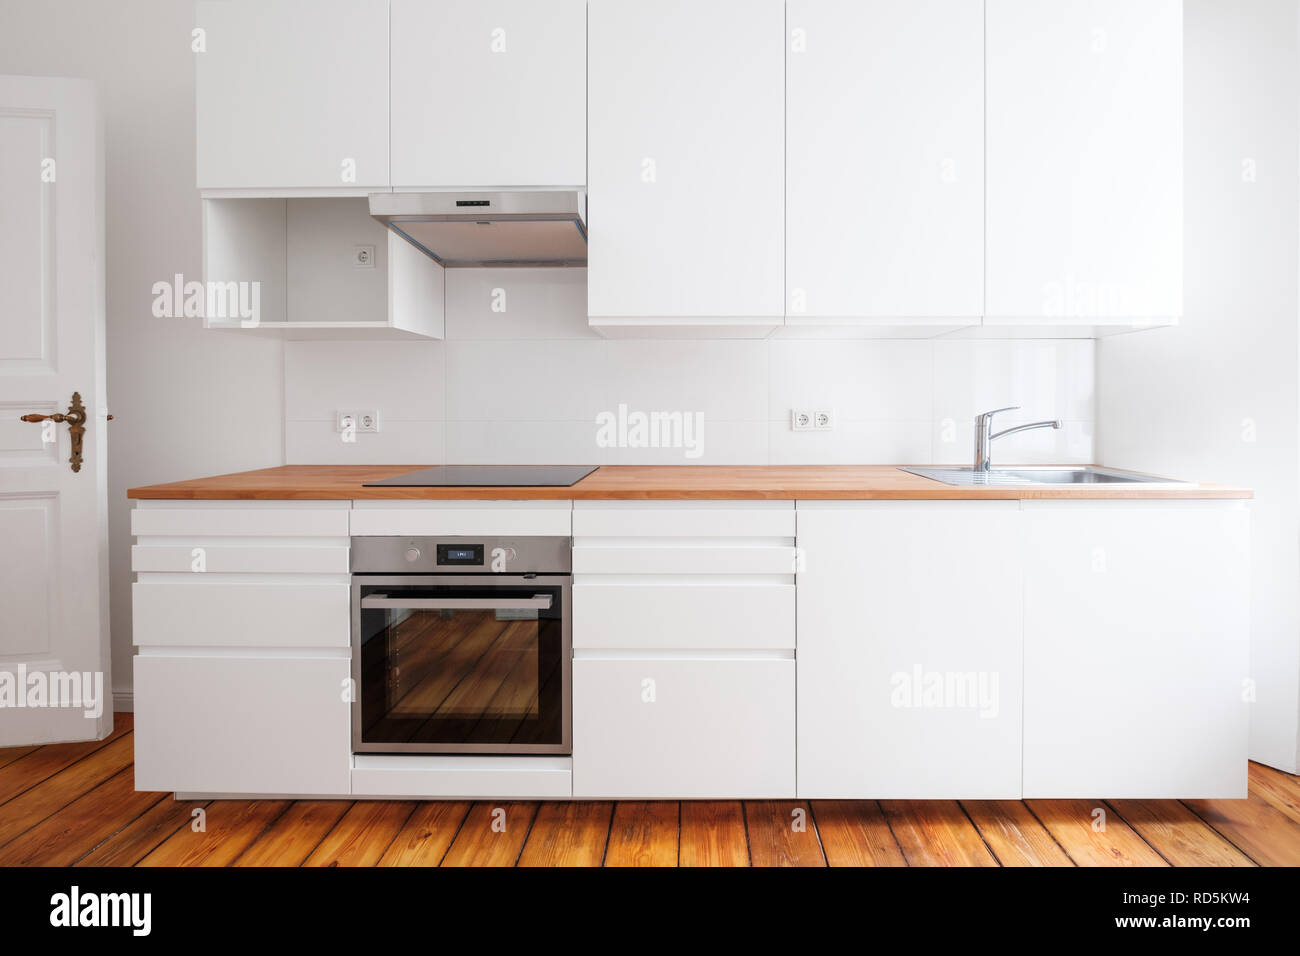 White Kitchenette , Newly Built In Kitchen Furniture Frontal View With  Wooden Worktop And Board Floor